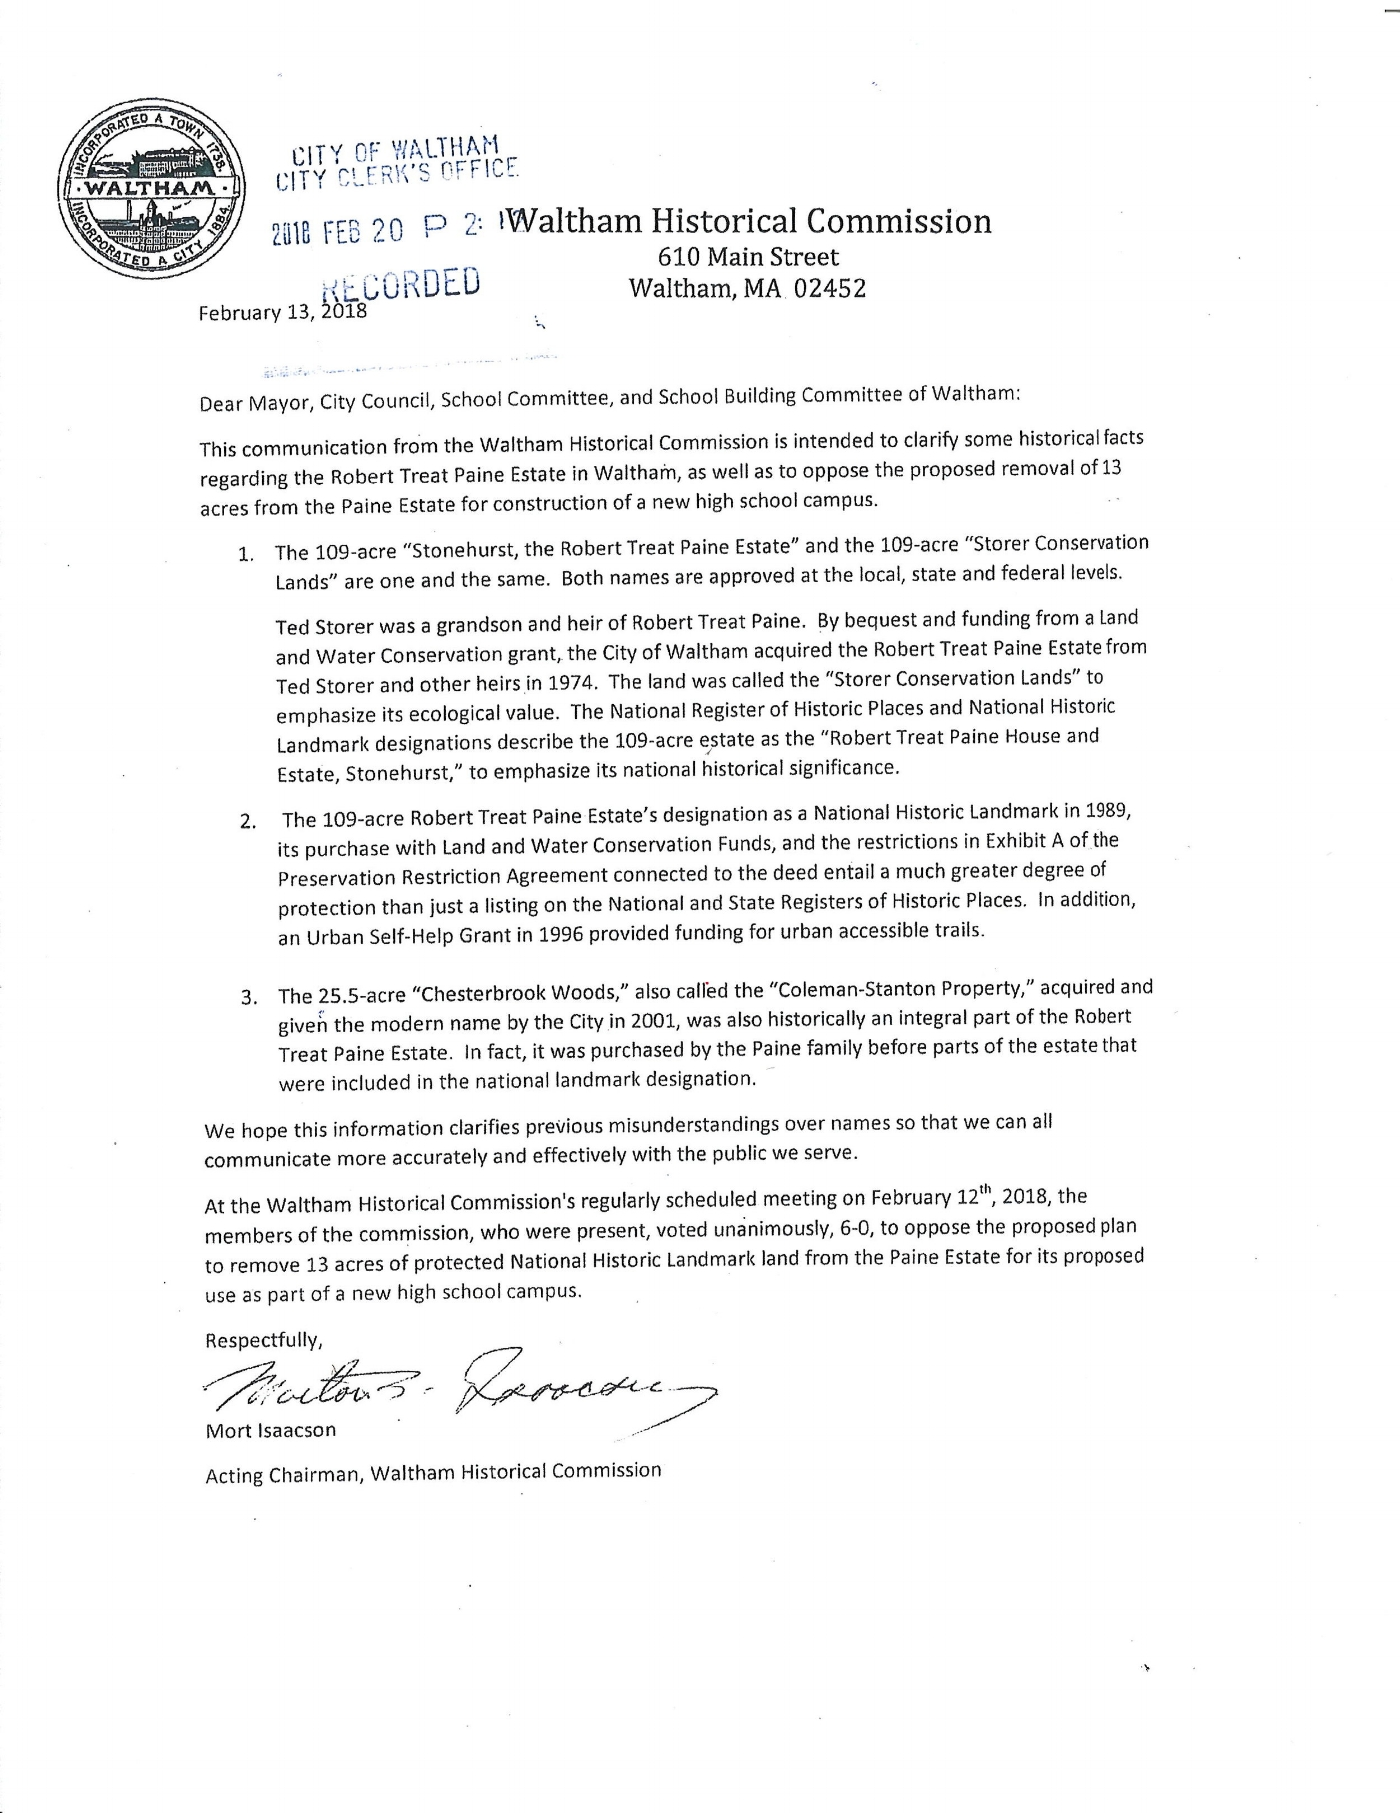 Waltham Historical Commission Letter